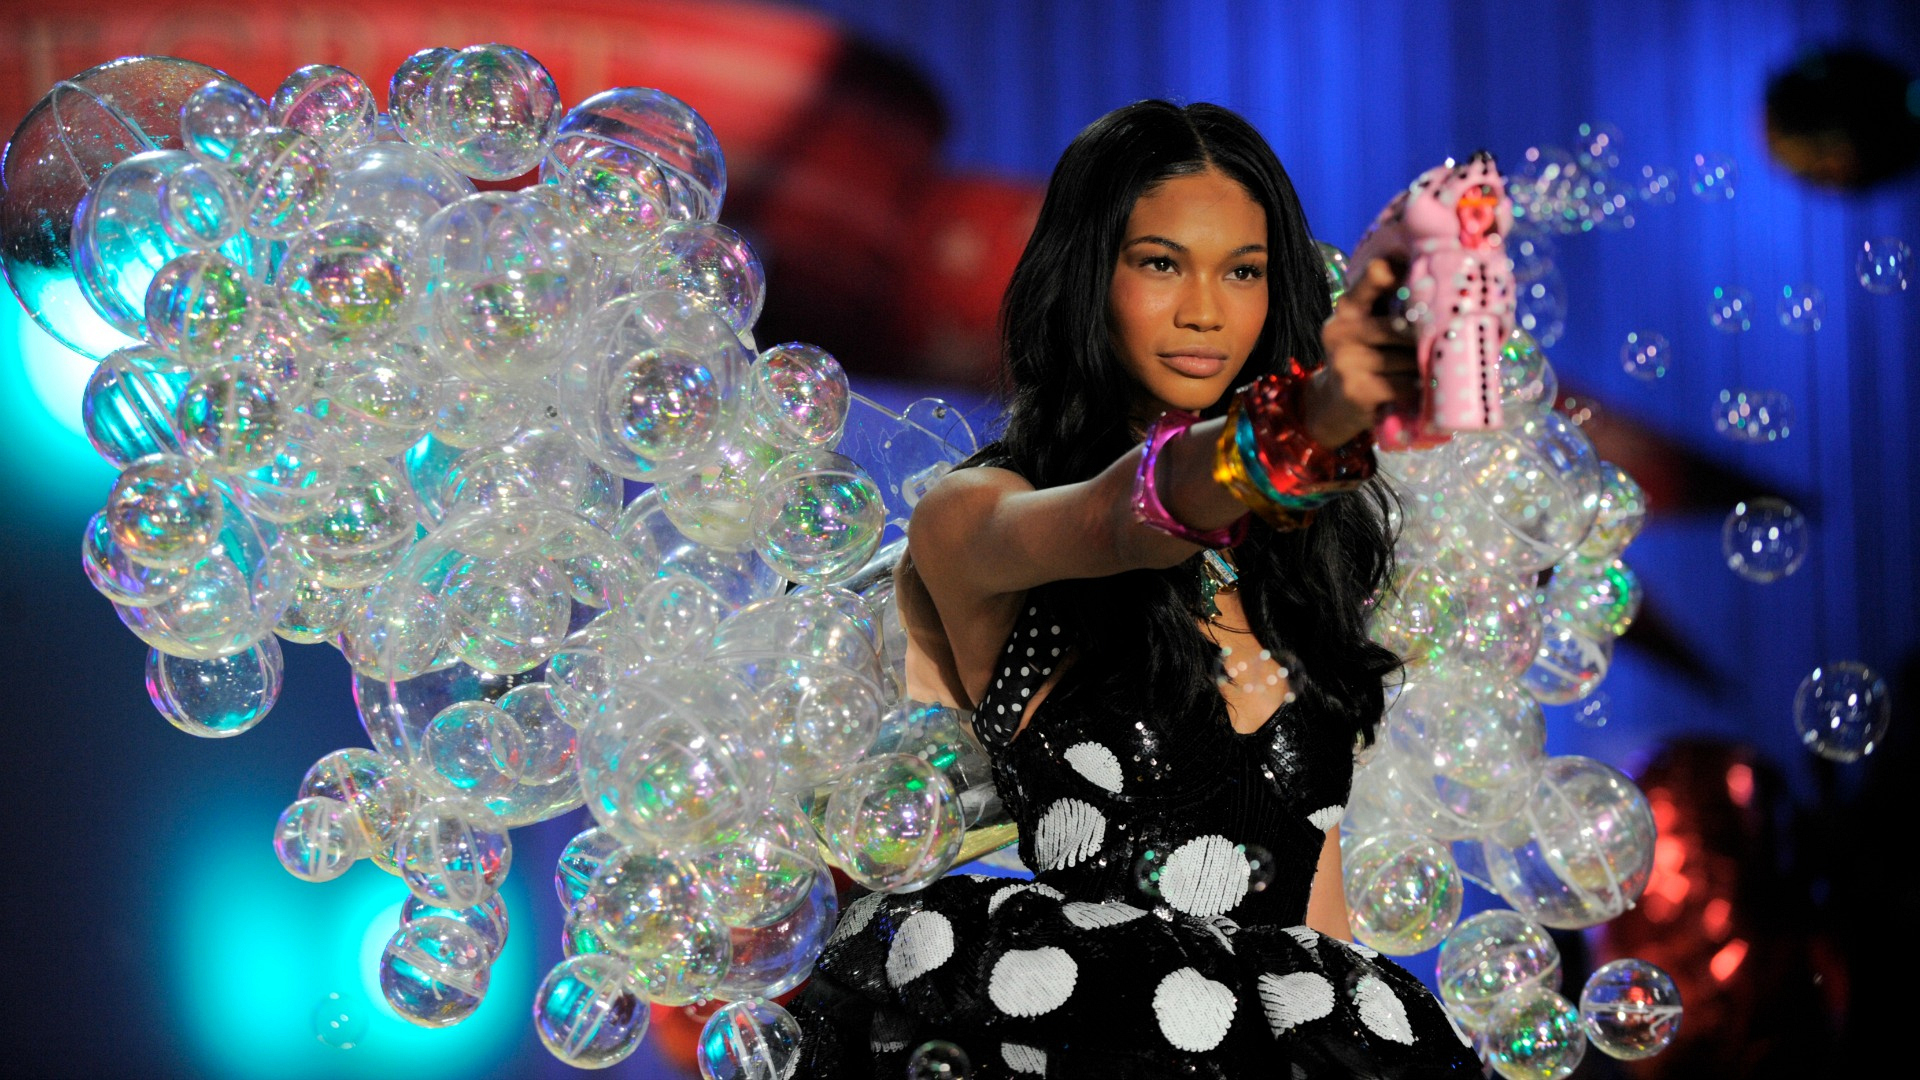 Chanel Iman bubbled up in 2010.